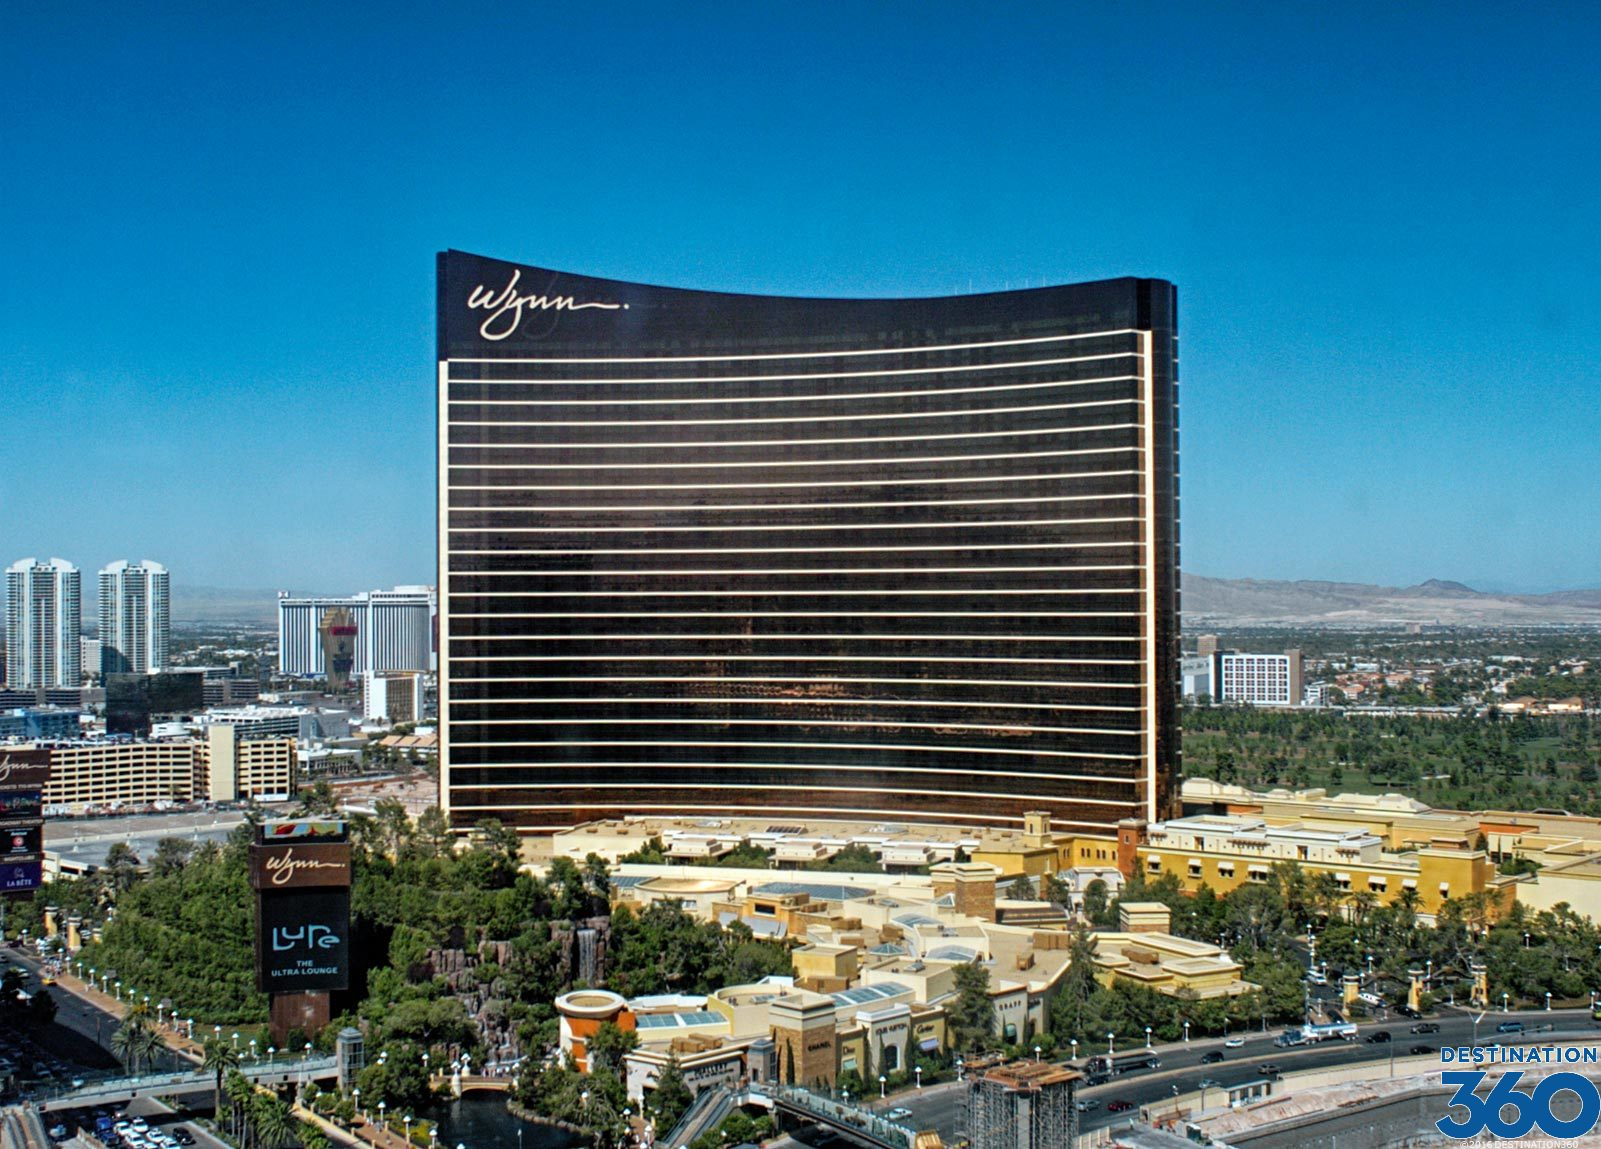 wynn hotel reservations. Black Bedroom Furniture Sets. Home Design Ideas